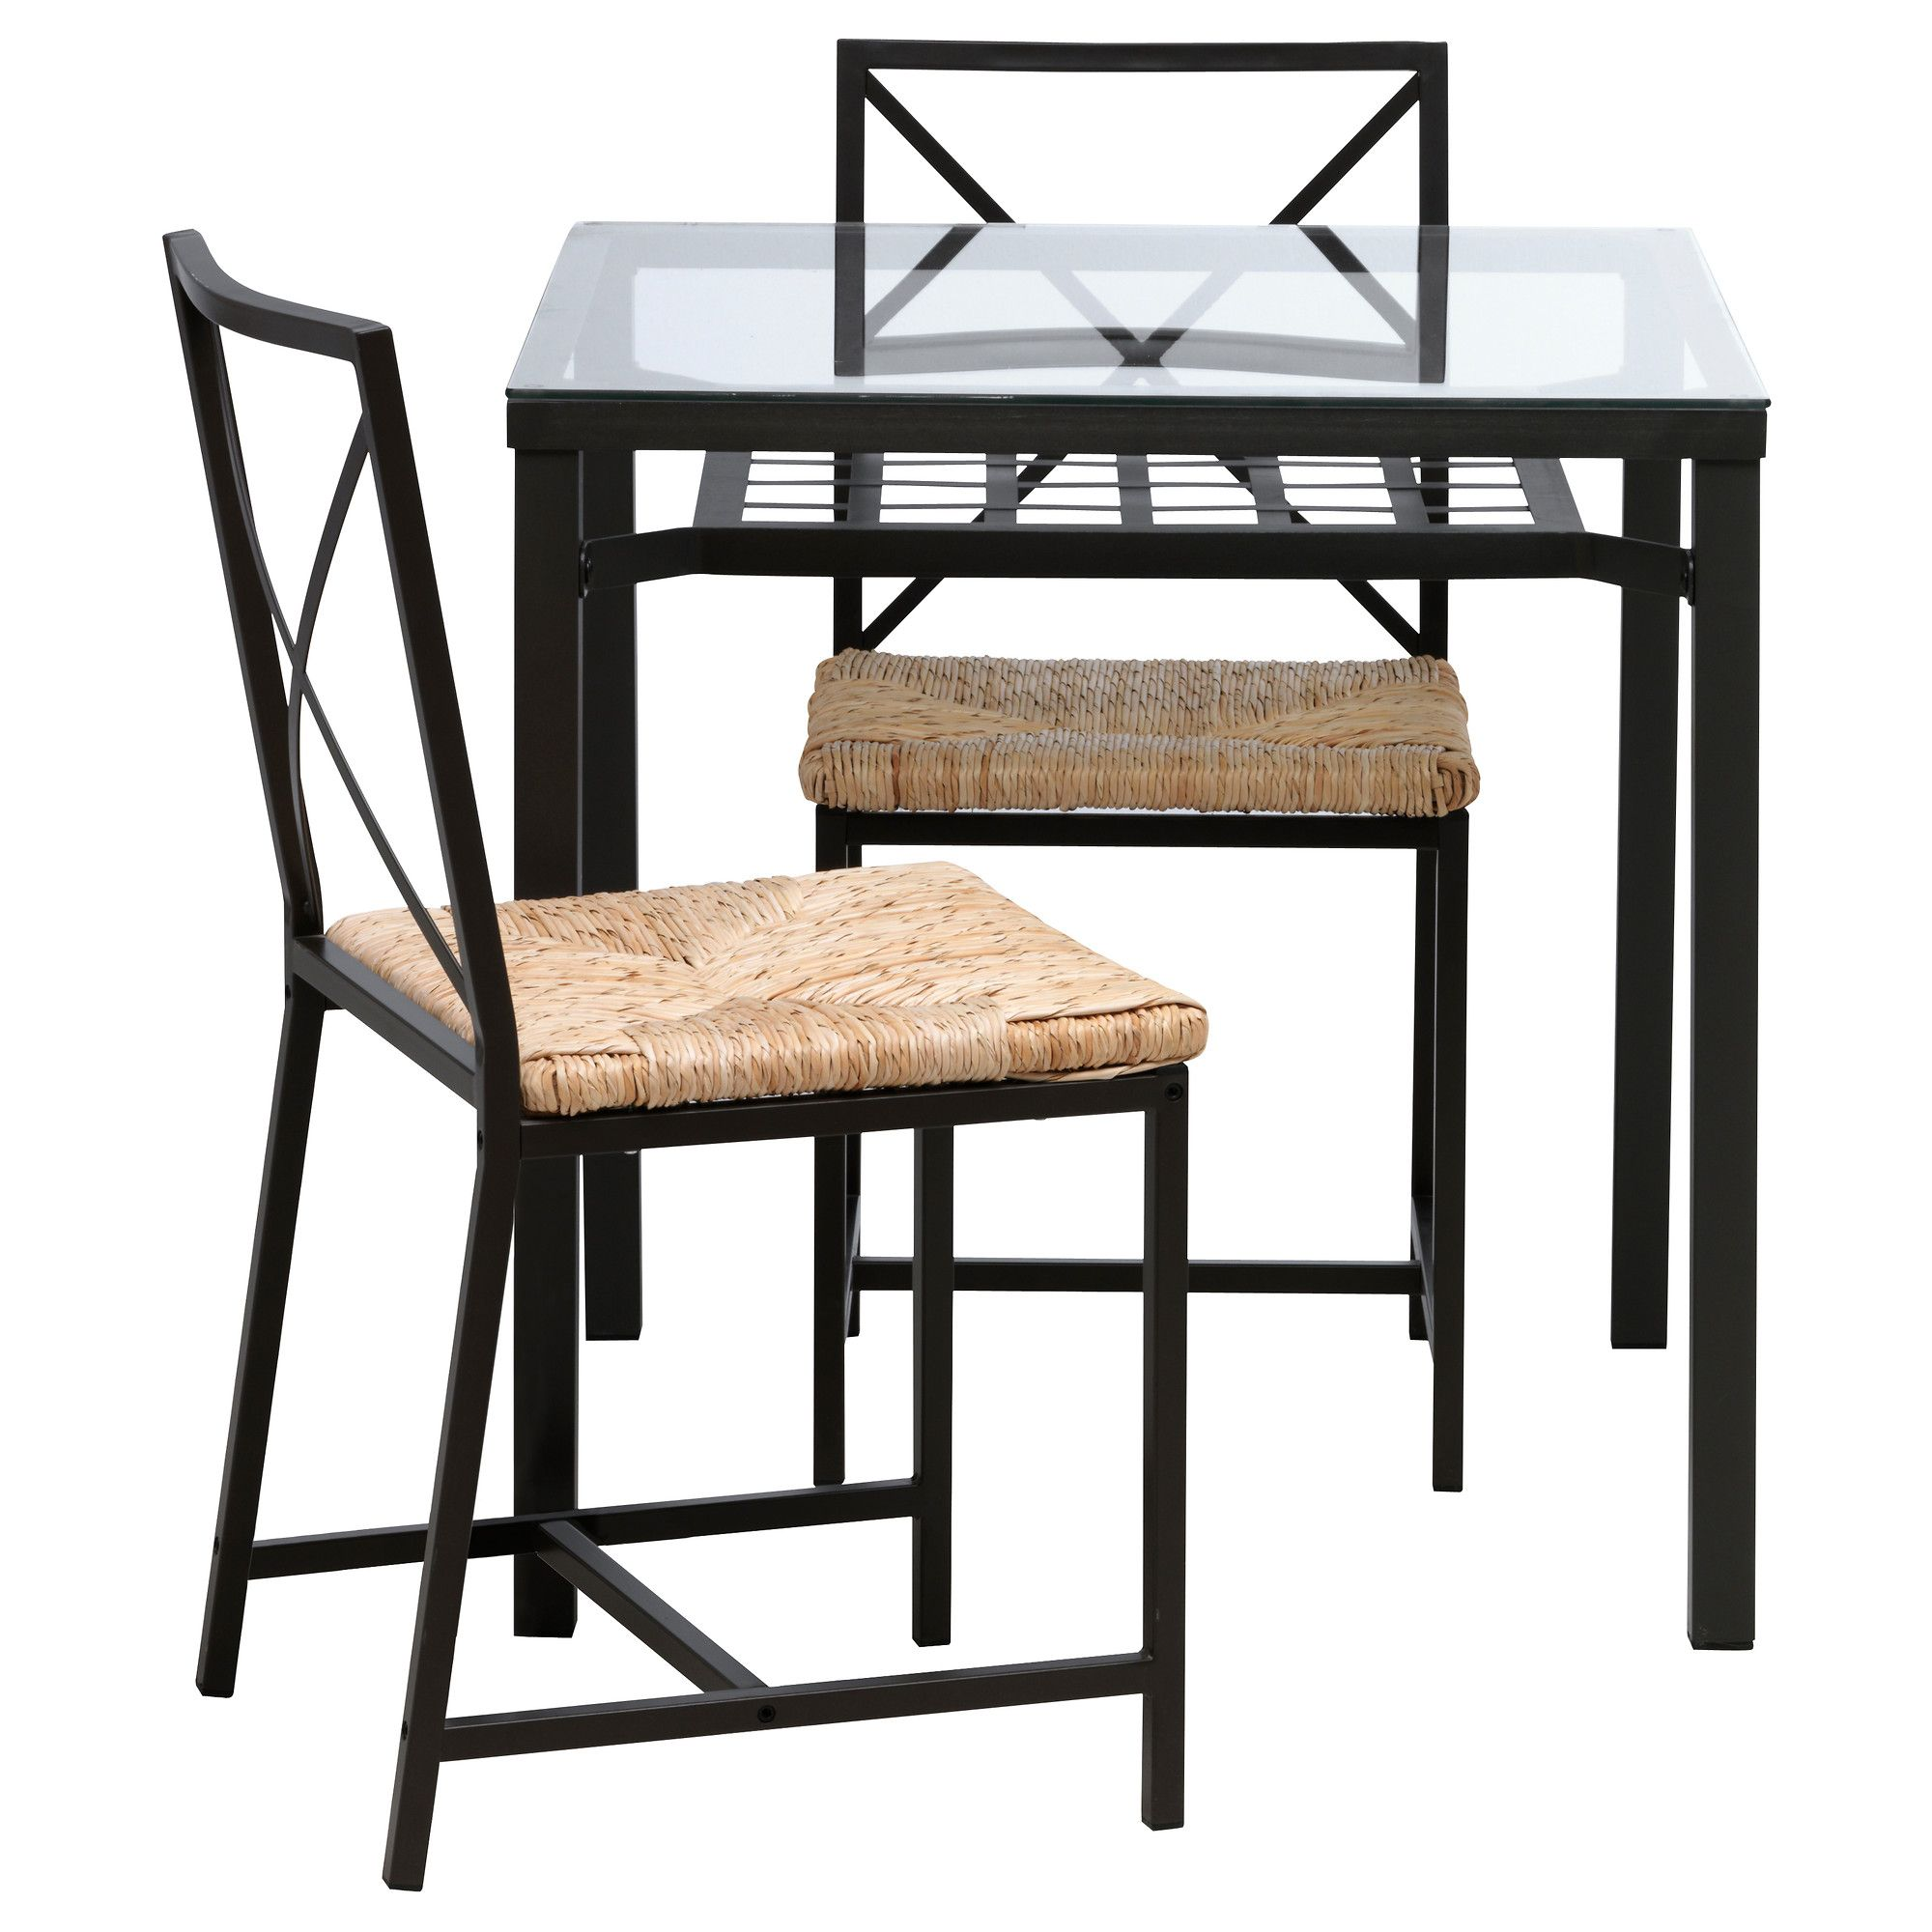 Ikea Us Furniture And Home Furnishings Ikea Dining Ikea